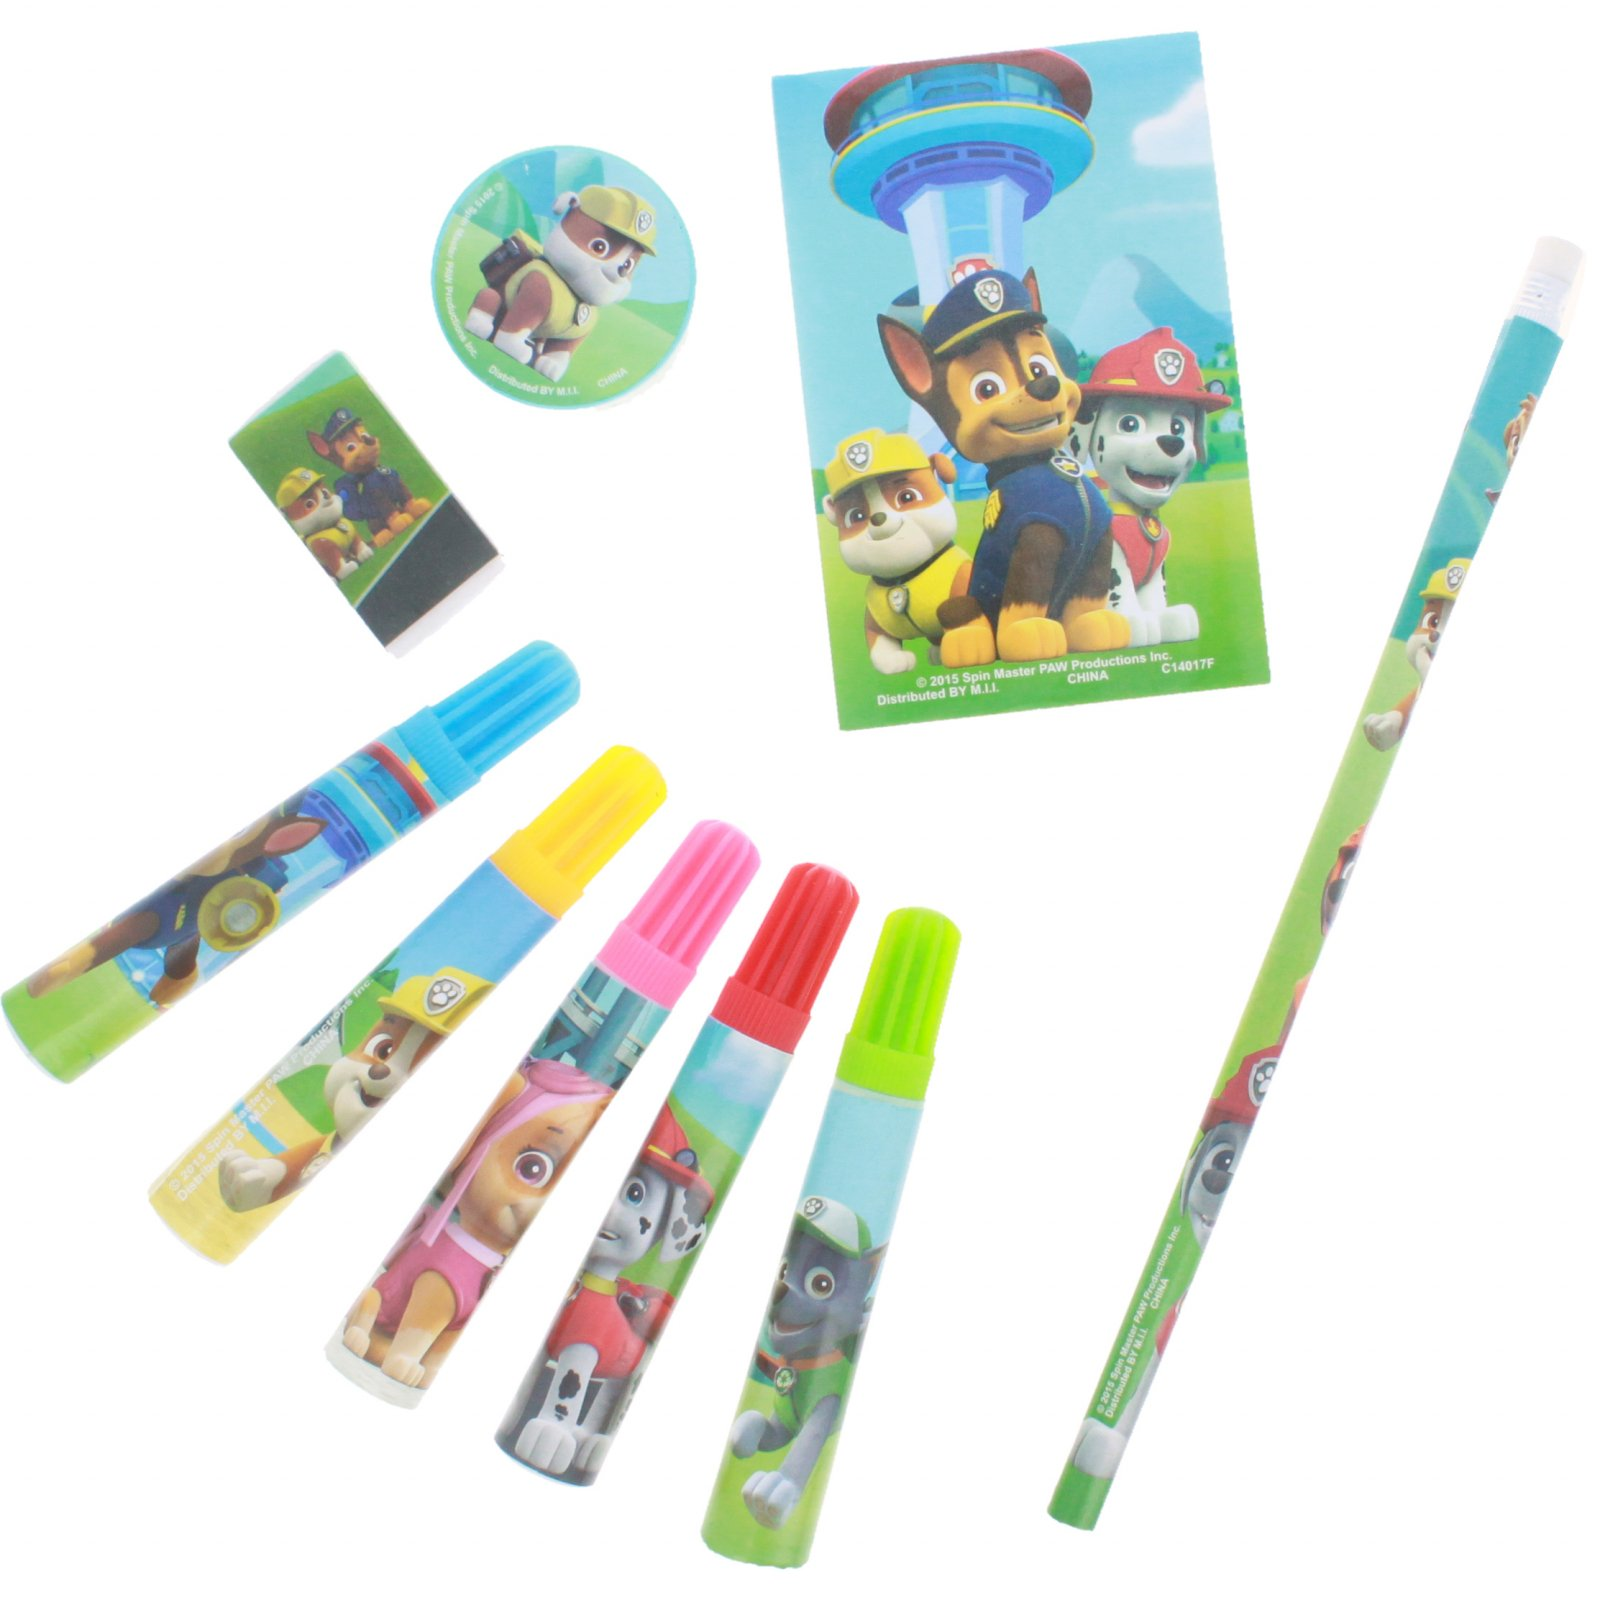 Nickelodeon Paw Patrol Kids Stationery Set Pencils Markers Eraser Party Favors